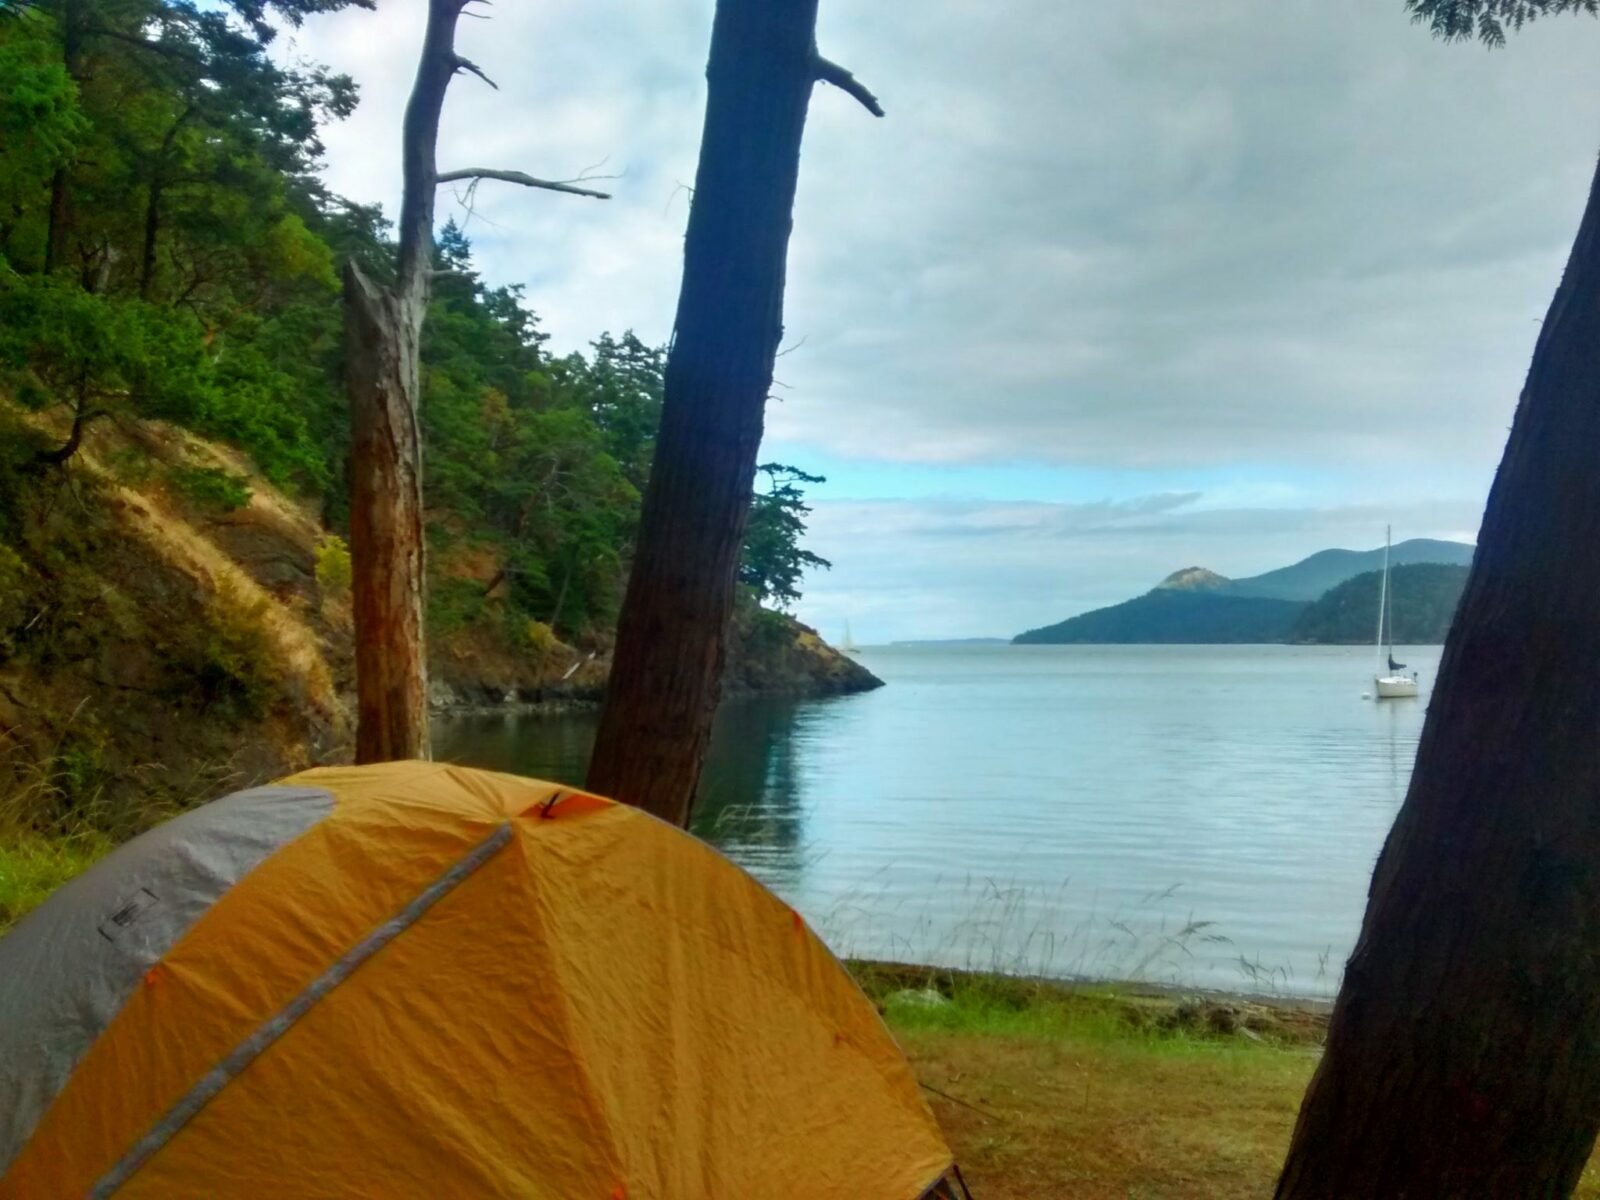 Camping in the San Juan Islands on Jones Island. An orange and white tent is between a few trees near the beach. There are green trees along the shore and a sailboat anchored in the bay. In the distance are more forested islands